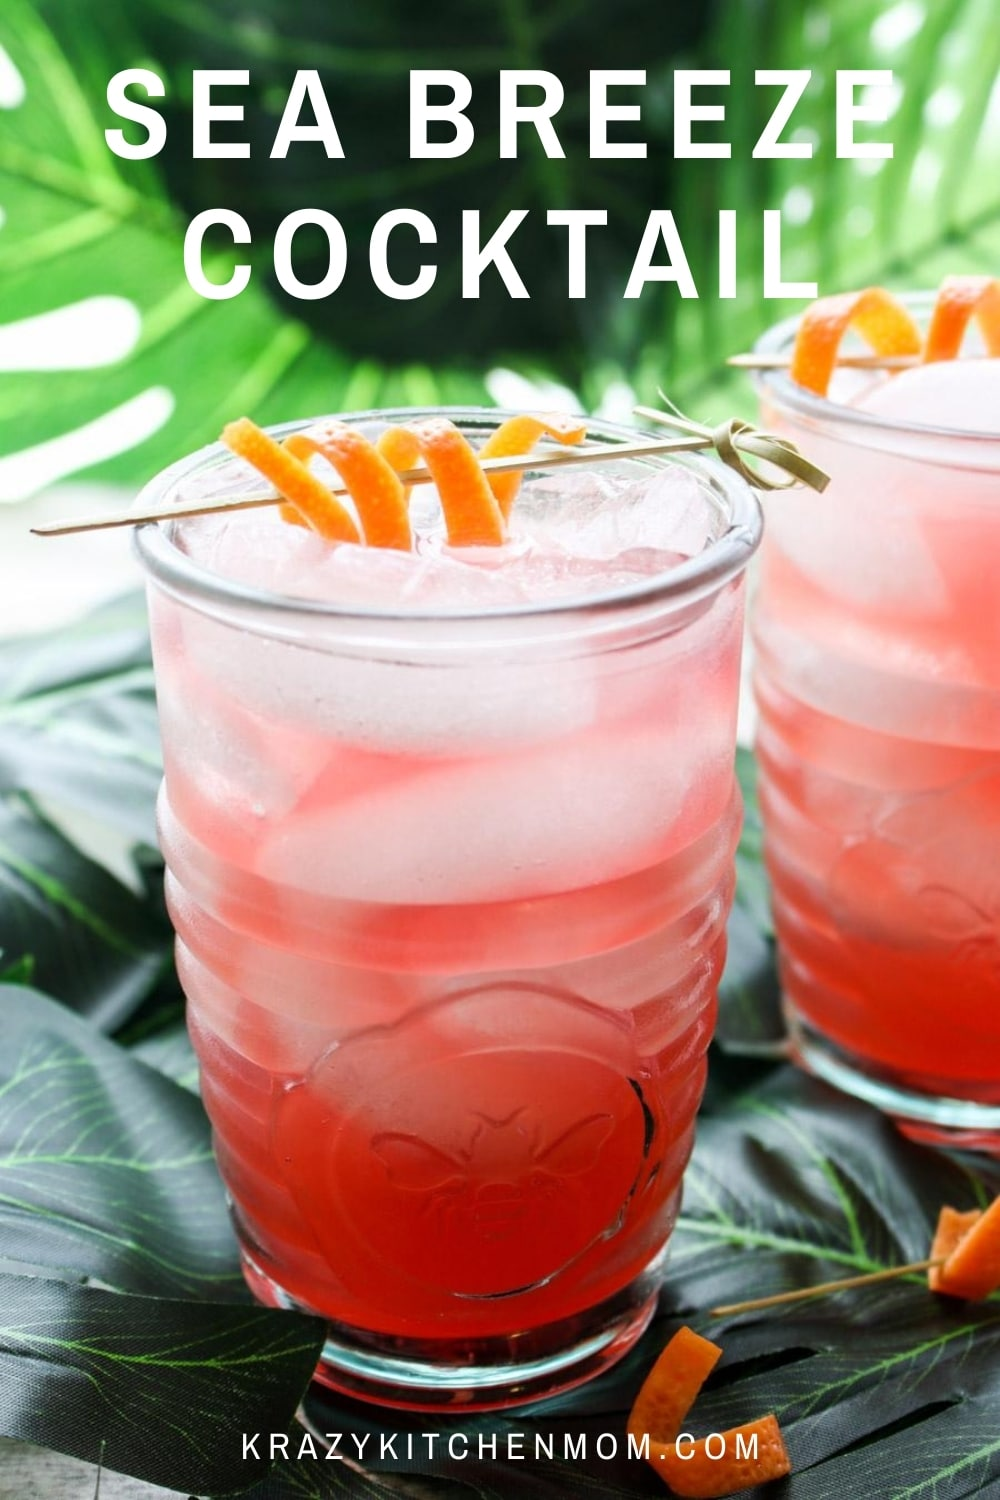 It's summertime...time for sunglasses, flip flops, floppy hats, and lounging in the sun. It's also time for my go-to summer sipping Classic Sea Breeze cocktail.  via @krazykitchenmom